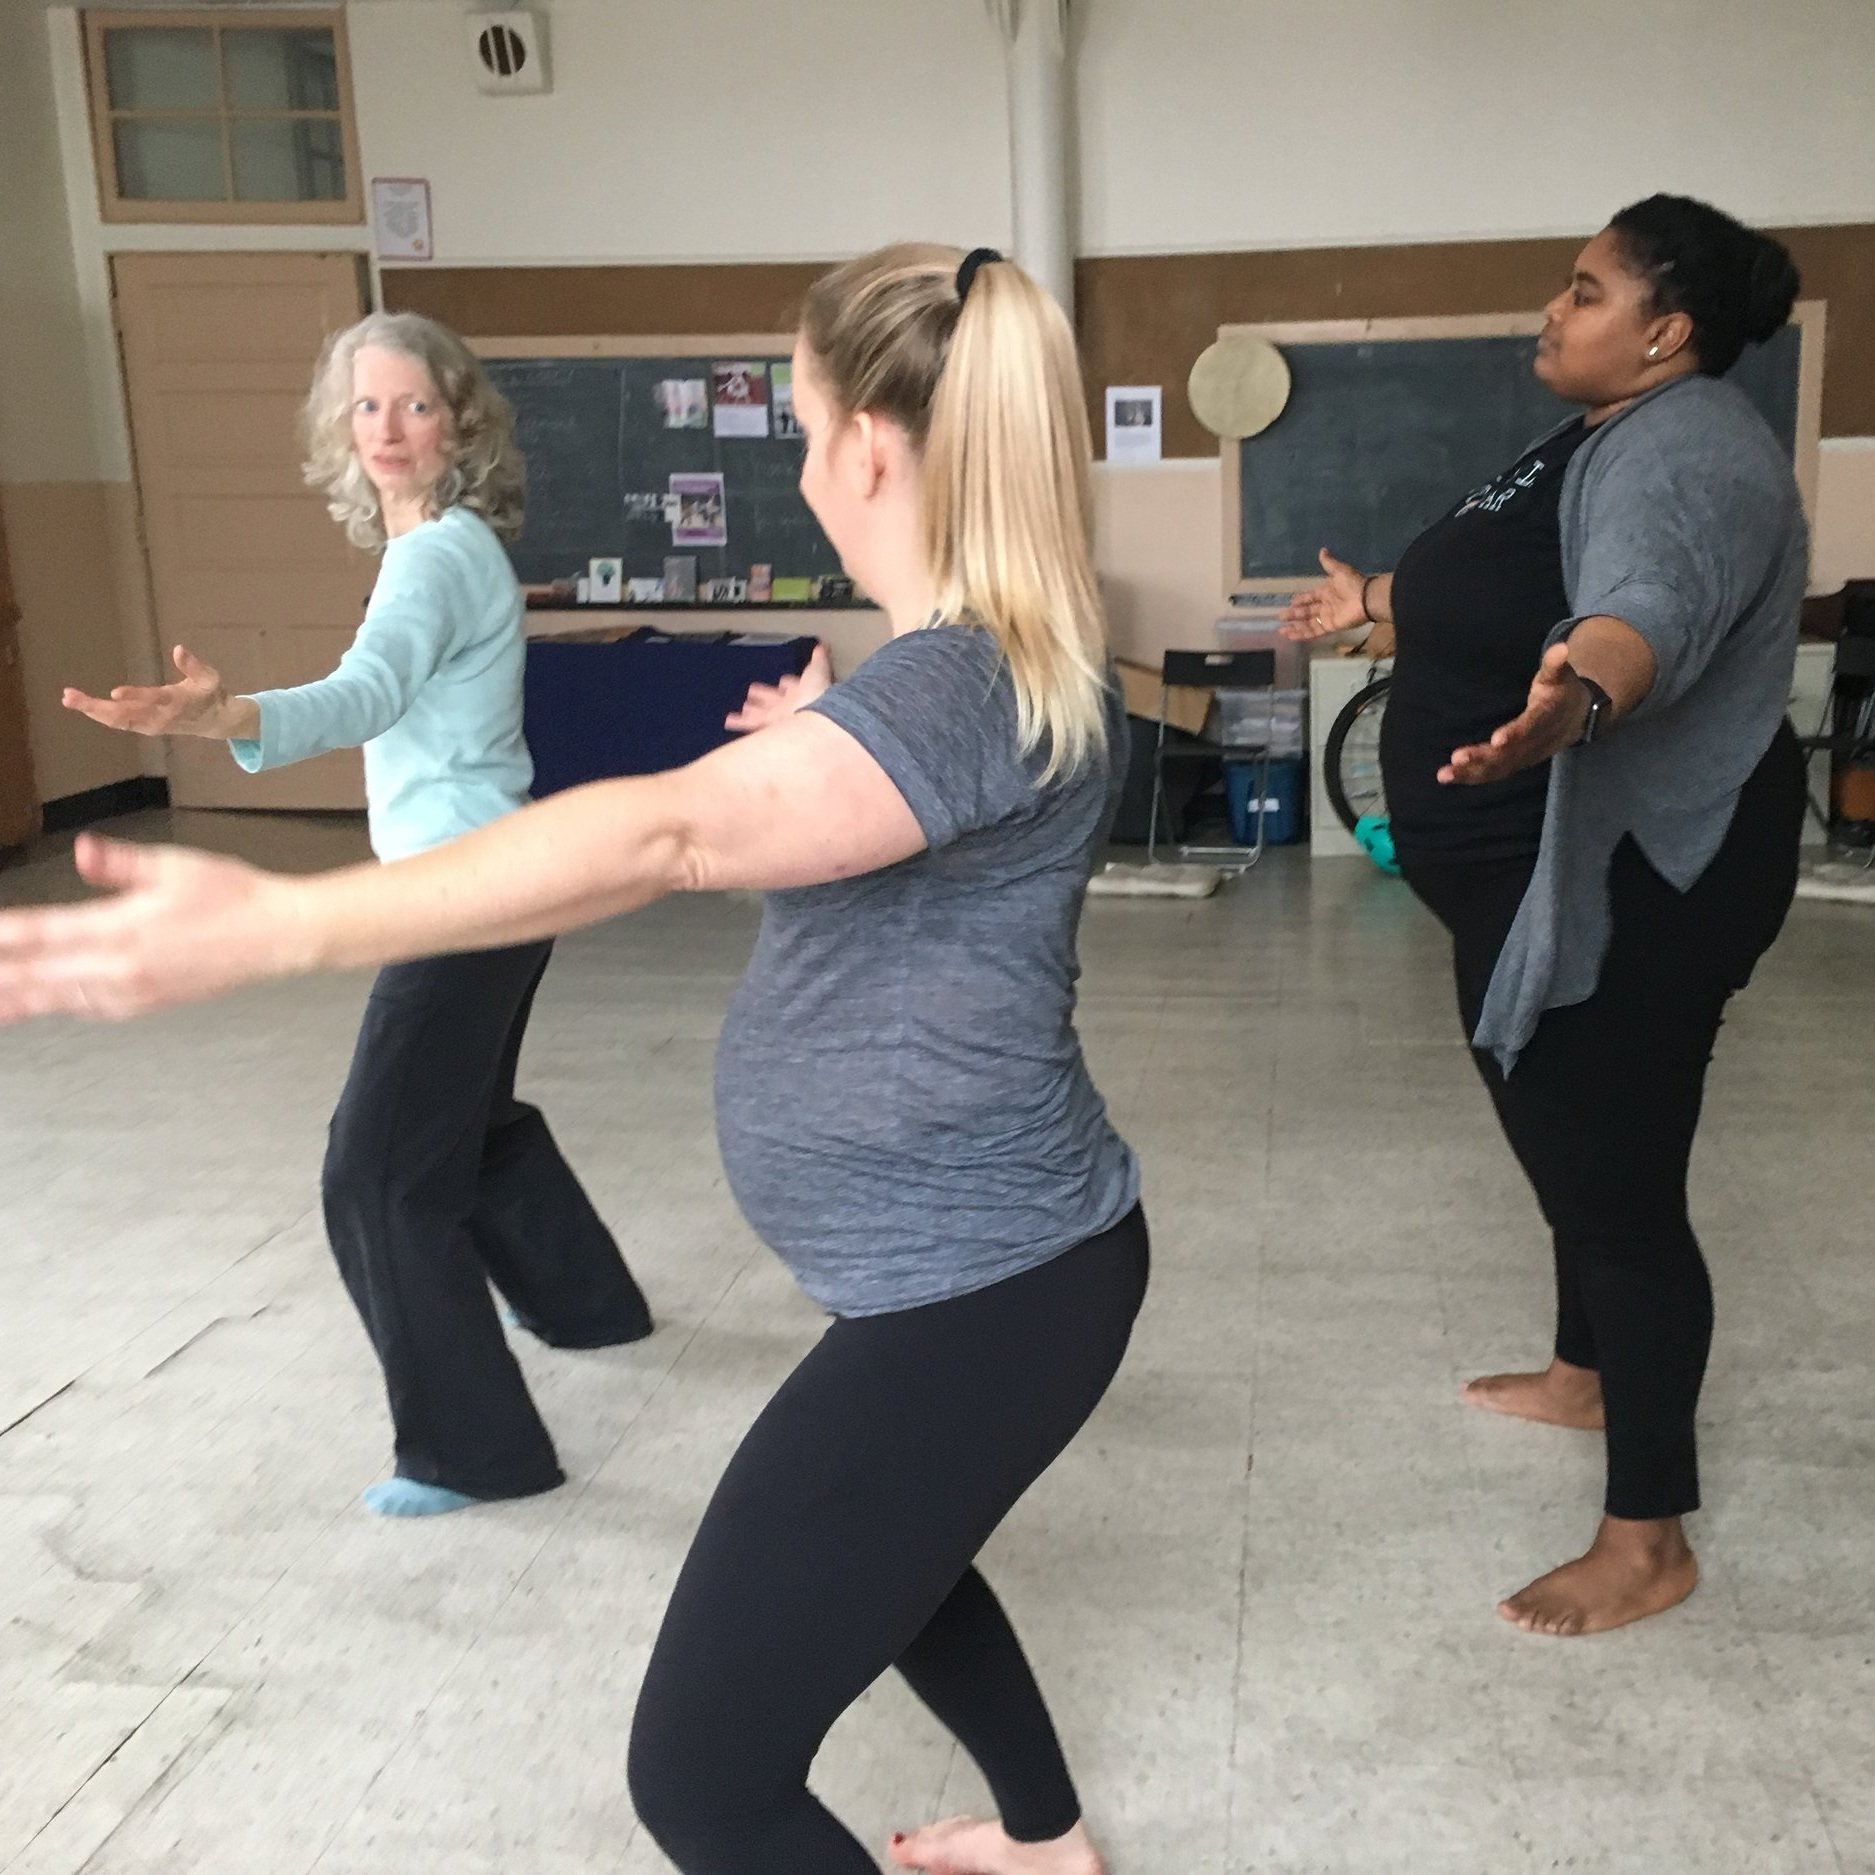 Deep Listening Movement & Vocal Workshop for Childbirth and New Parenting. Sharing tools to access a deeper sense of embodiment during labor. April 14, 2019.